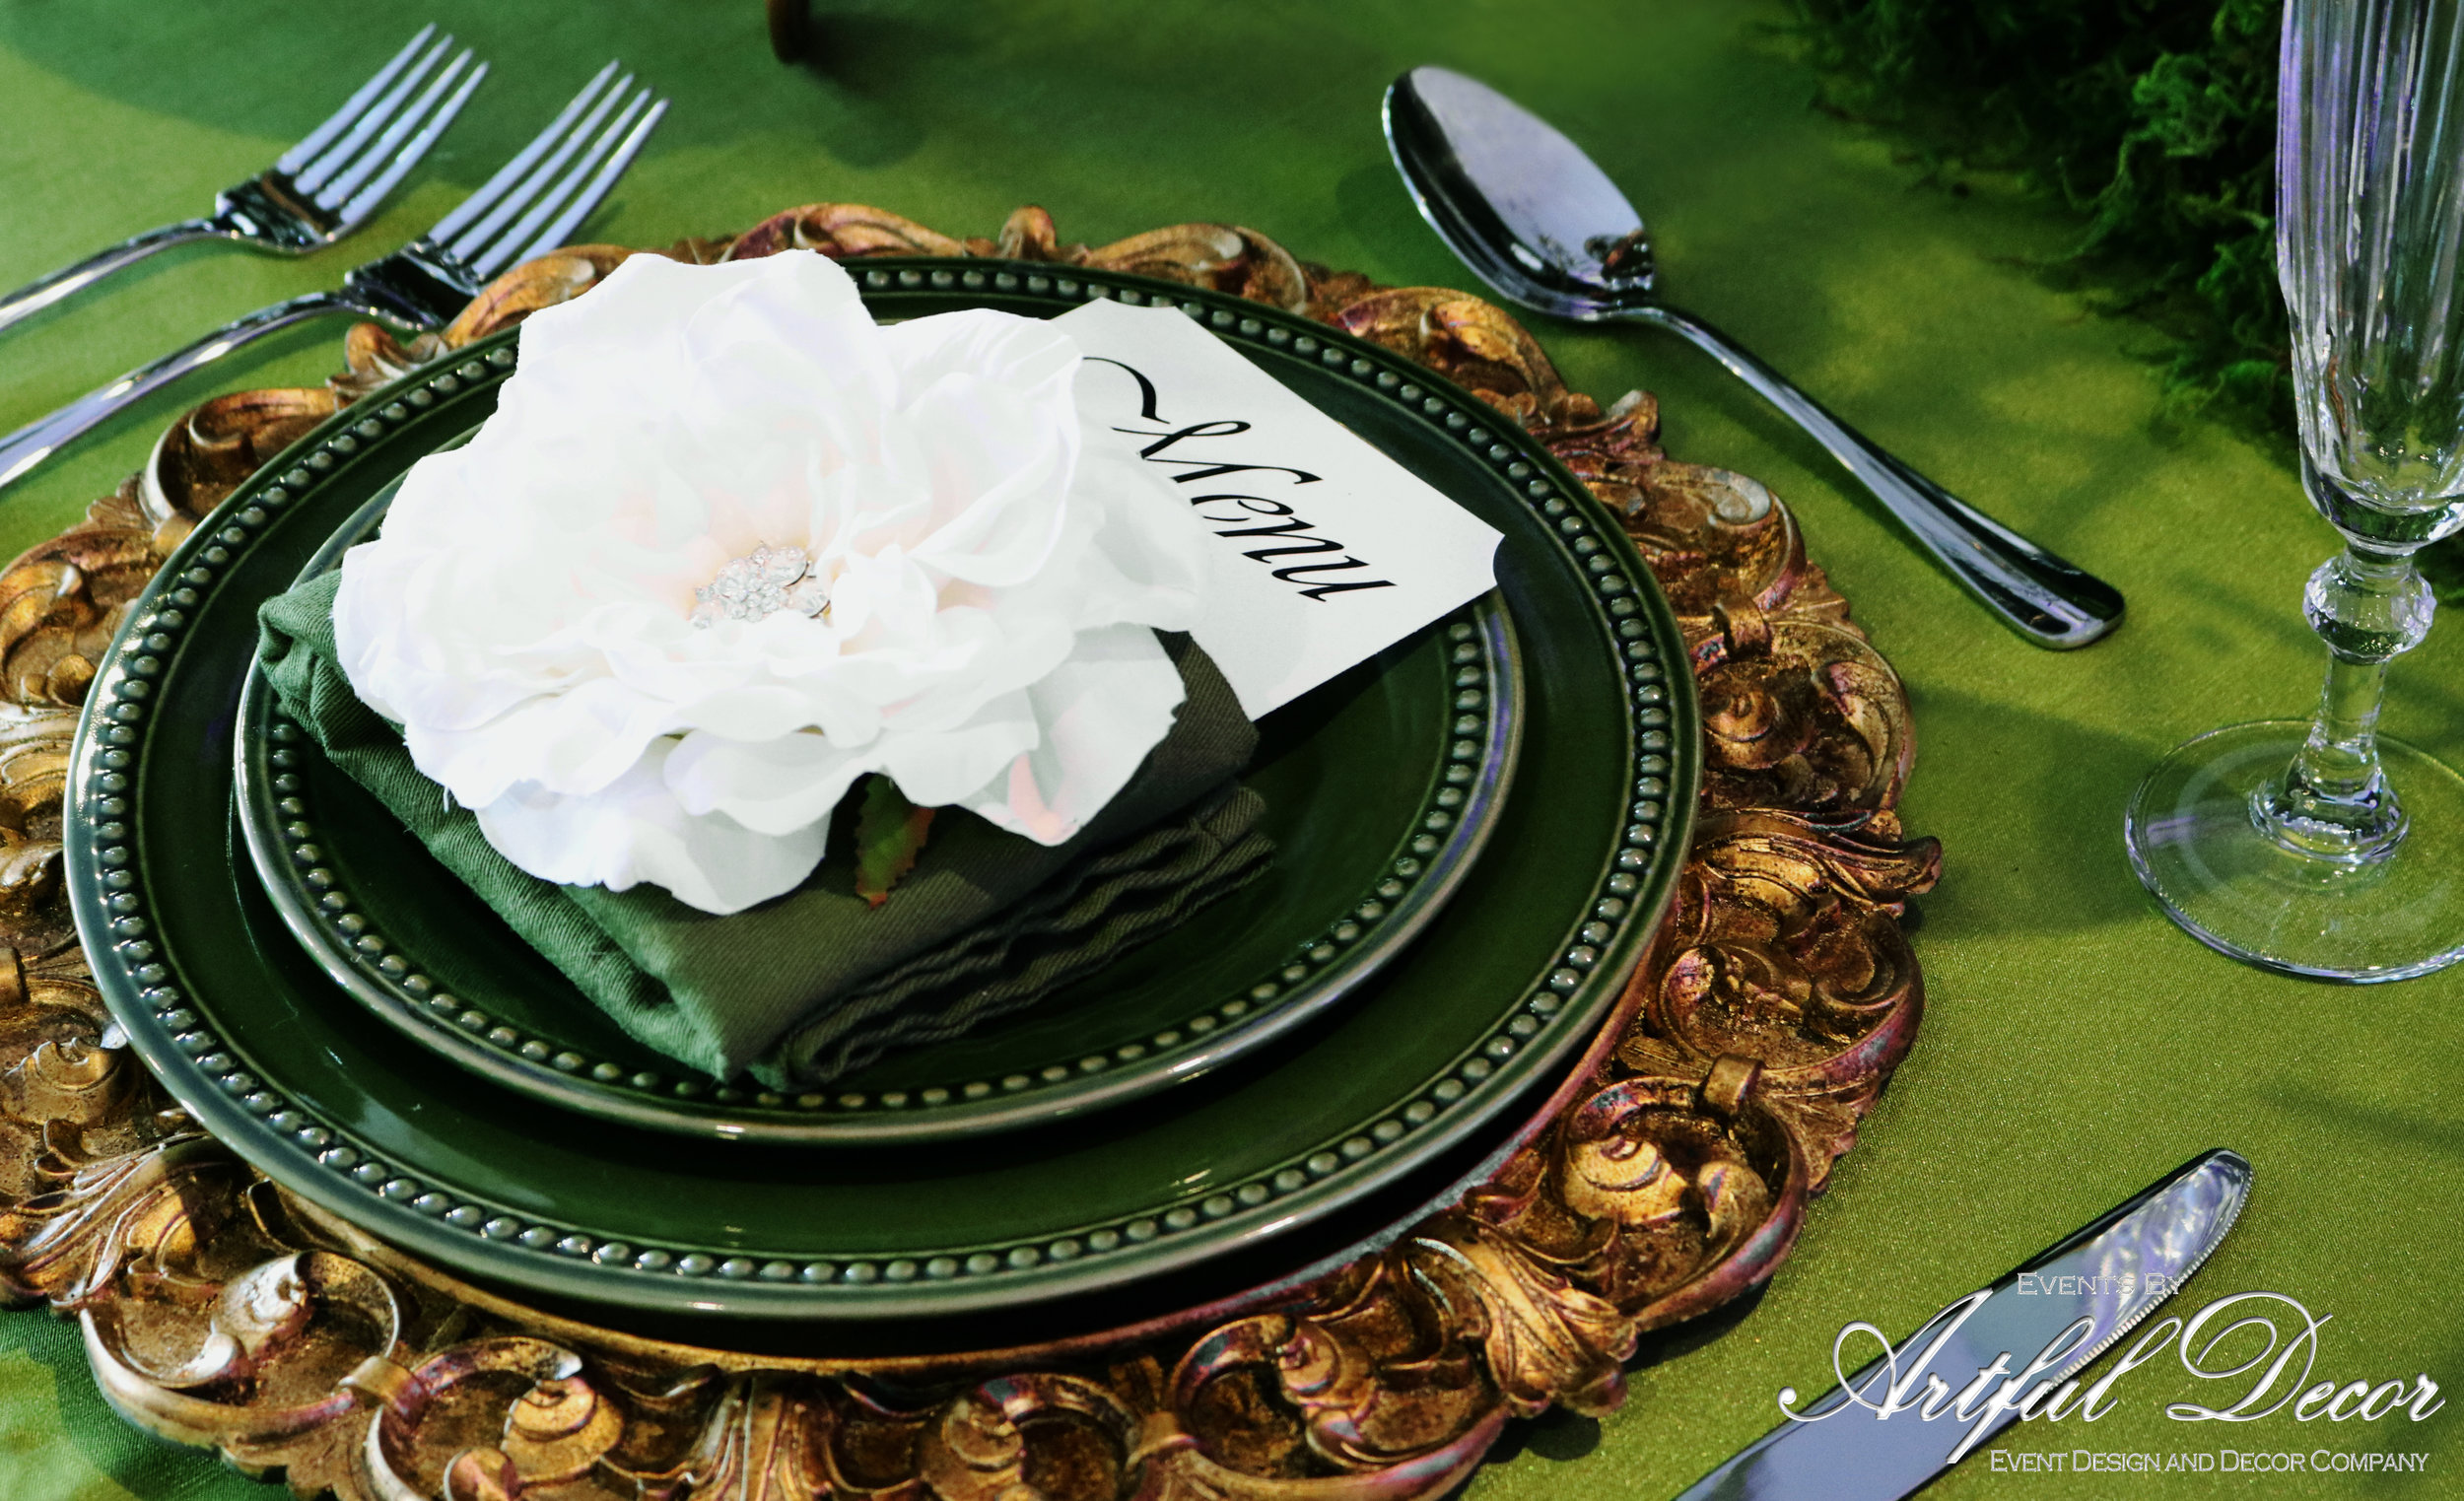 Artful Decor Concept Table Spring 2017 Place Setting Copyright 3.jpg